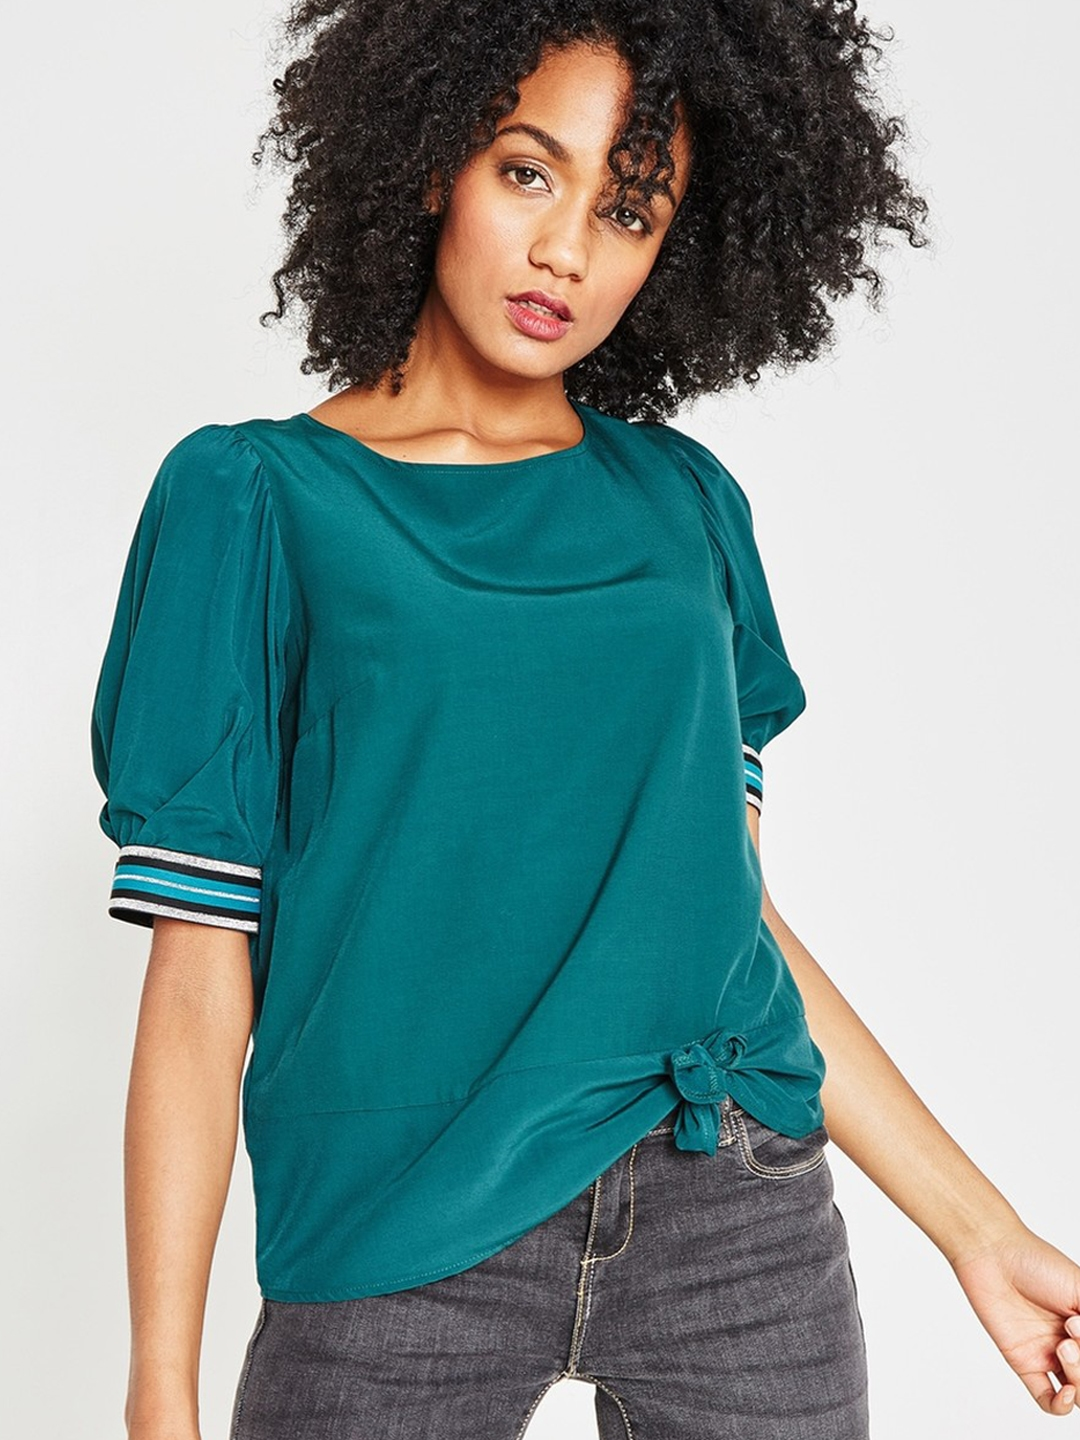 e098acbd48a03a Buy Promod Women Green Solid Top - Tops for Women 8001591